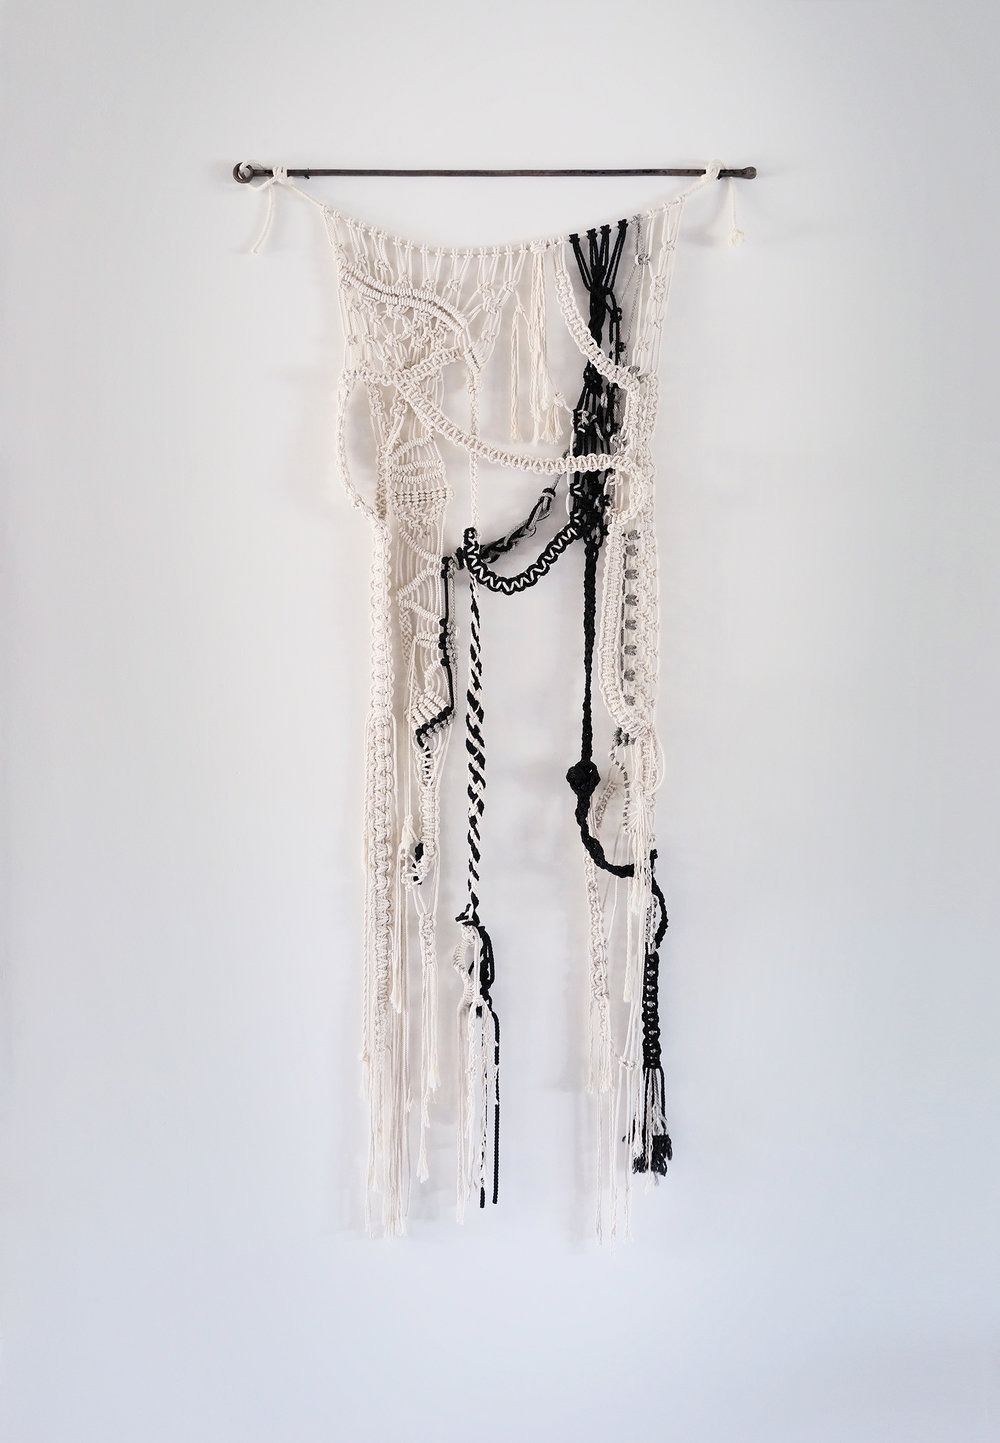 Macrame_Before_Tall_02_COMP_R1_2500pxl.jpg